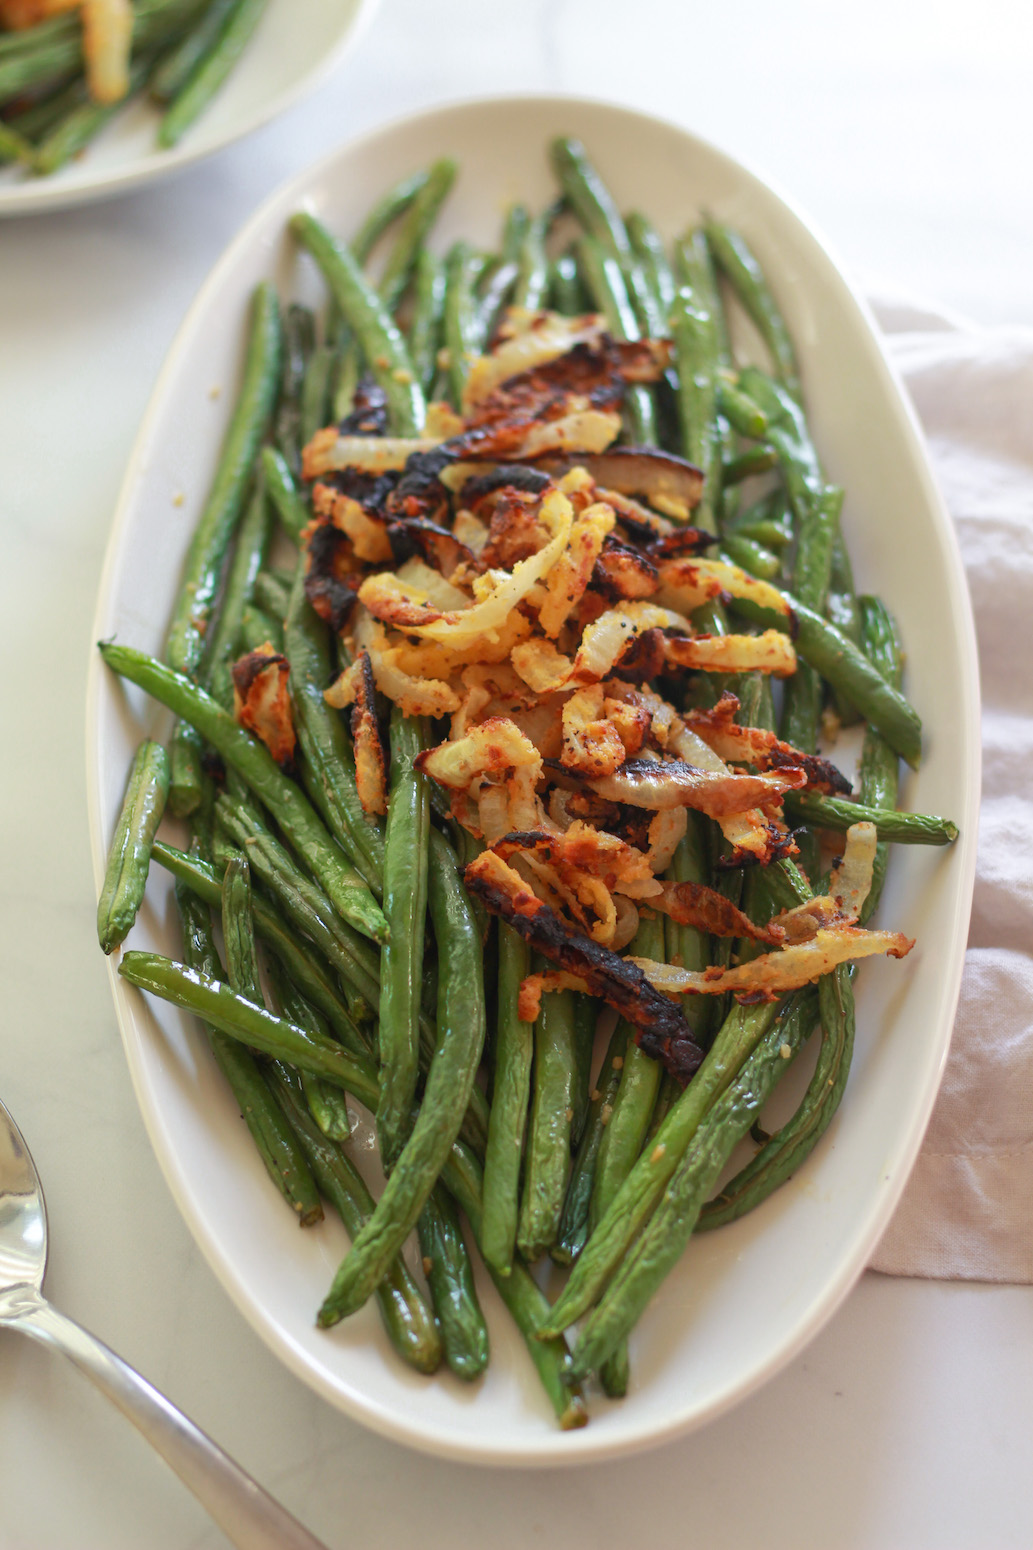 These lemon garlic green beans are simply roasted in the oven and topped with crispy chickpea fried onions. This is a simple vegan and gluten-free side dish recipe.